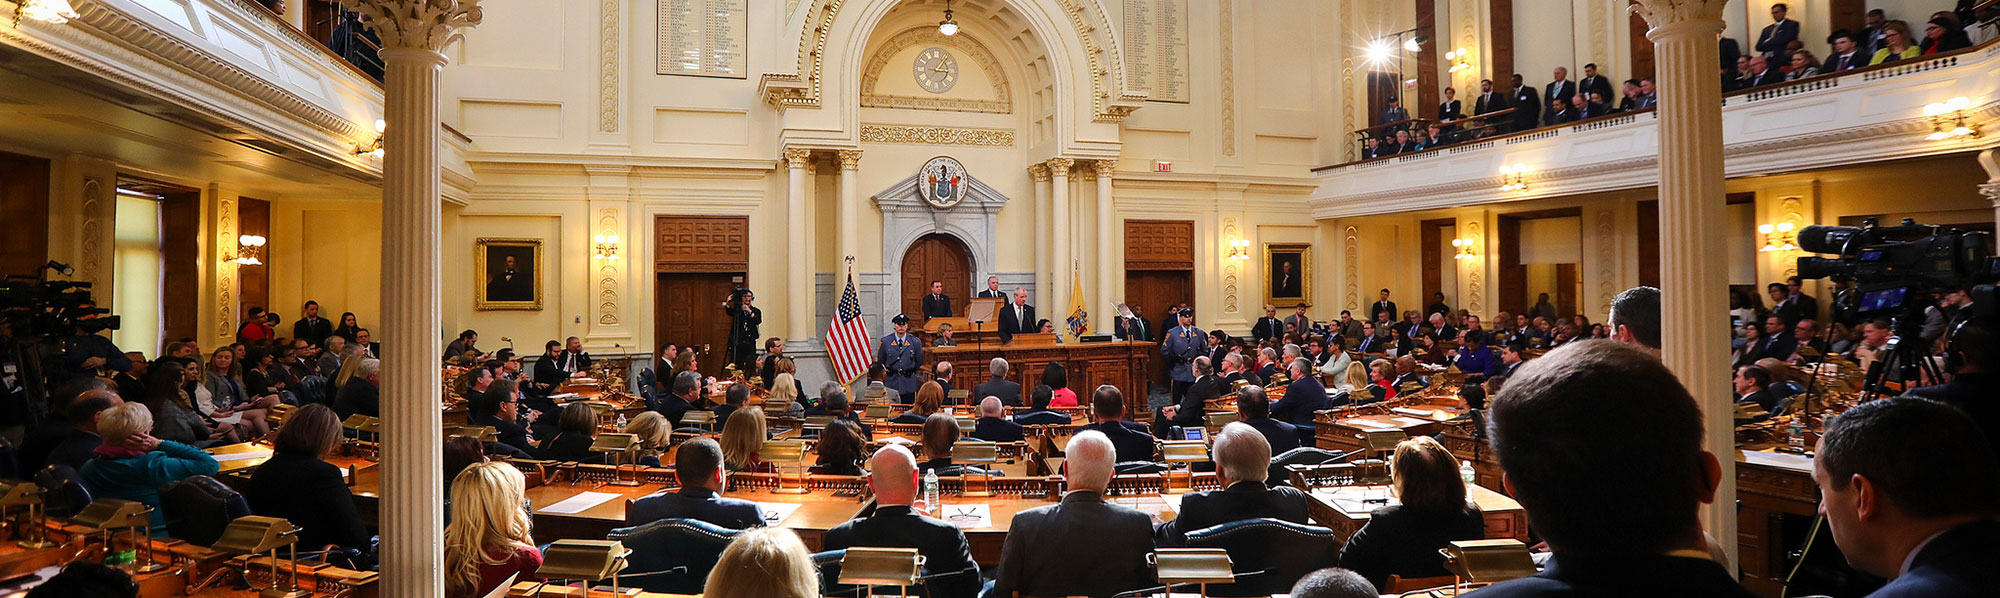 Gover nor speeking at Assembly Chamber Trenton, NJ